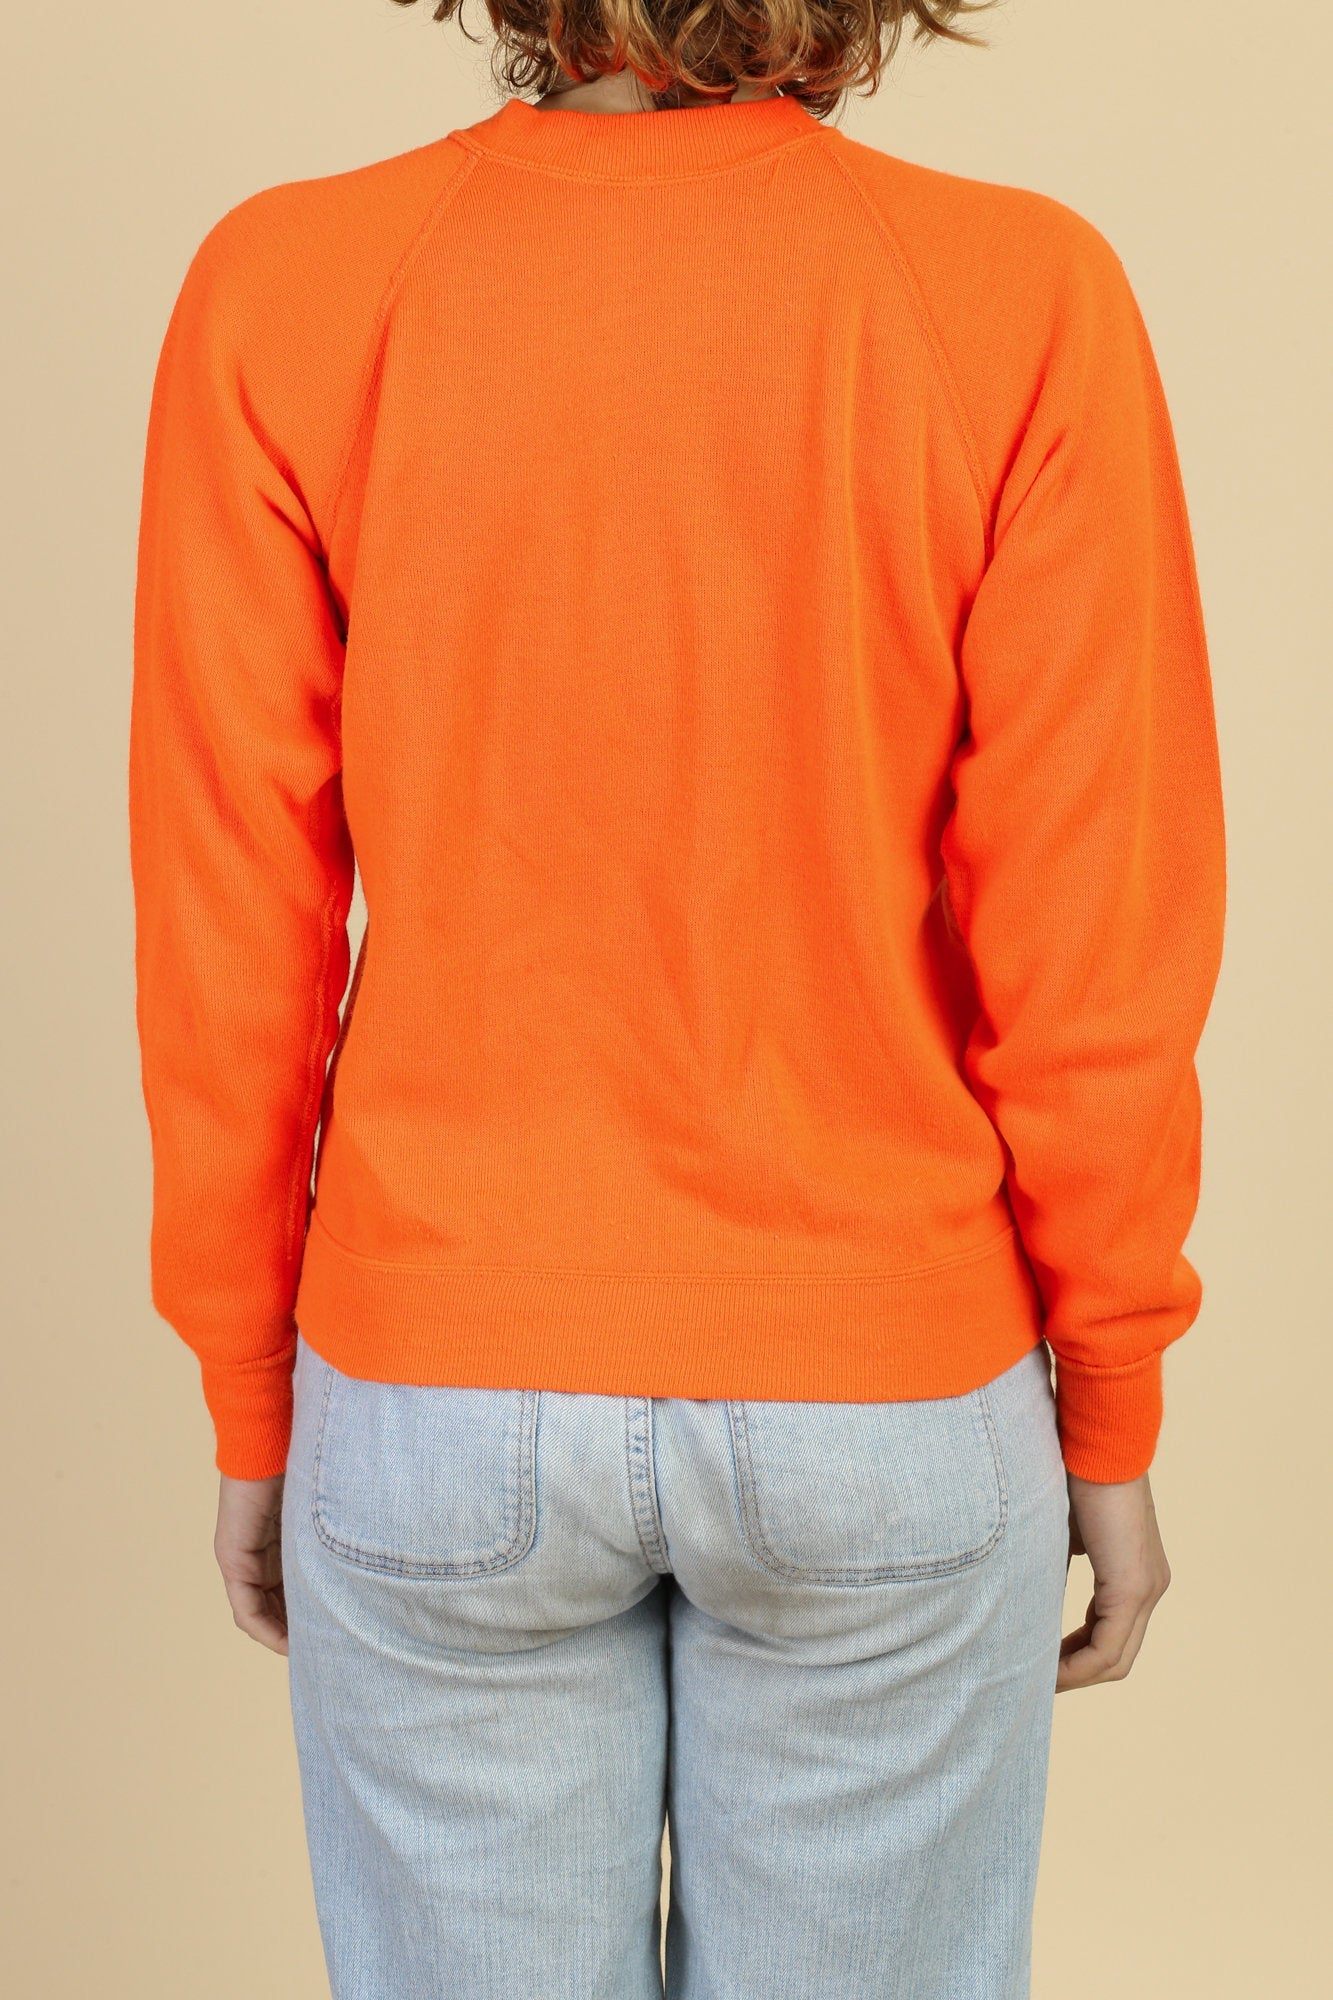 80s Bright Orange Raglan Sleeve Sweatshirt - Small